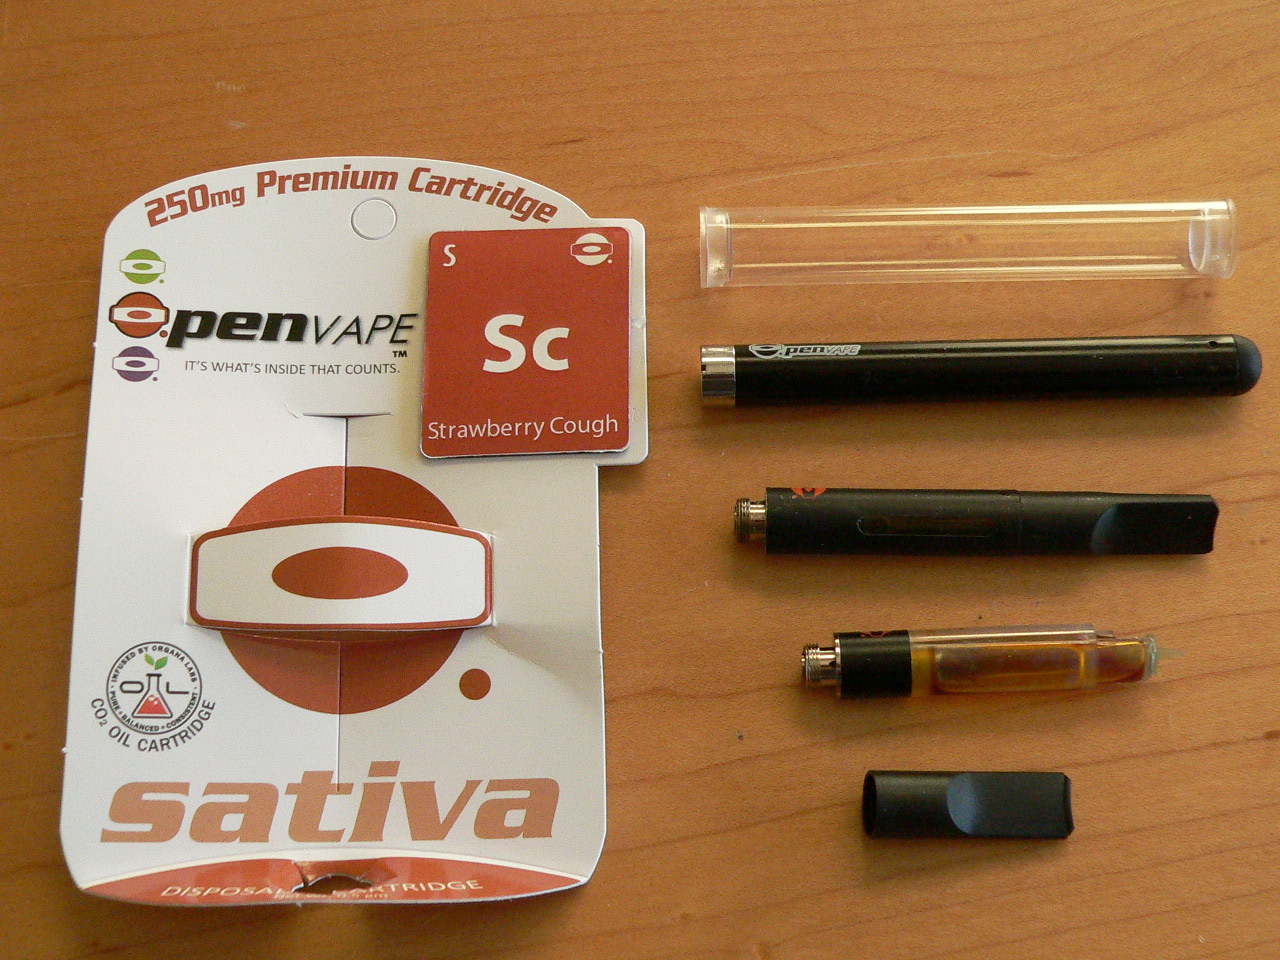 The O.Pen personal vaporizer and a Strawberry Cough vape cartridge.